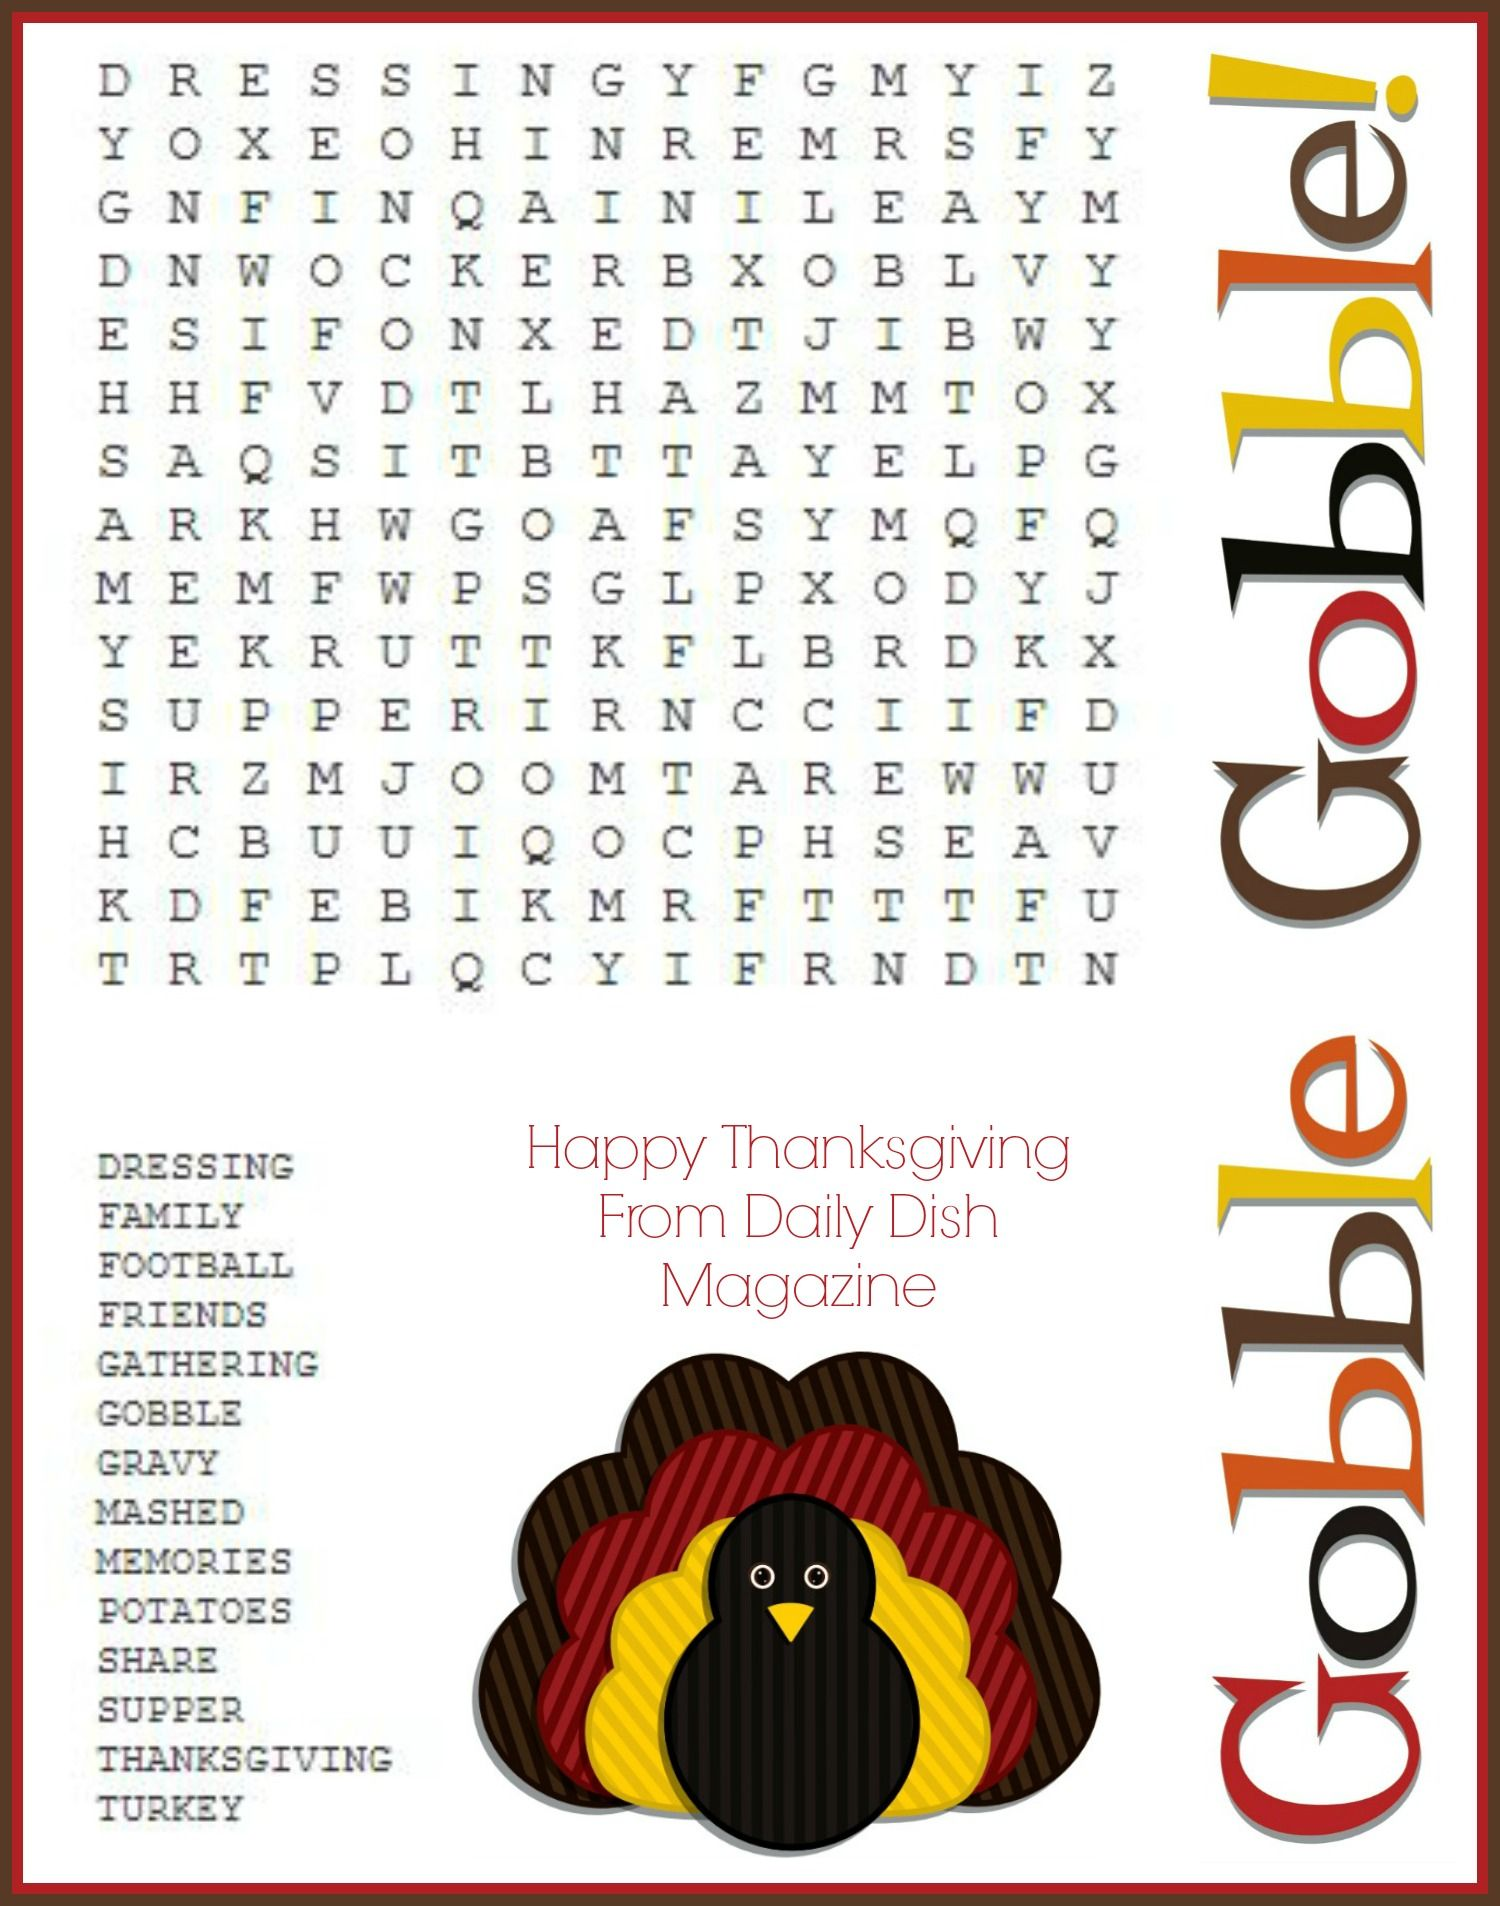 gobble gobble free thanksgiving word search and maze printables great turkey day activities for kids - Free Thanksgiving Templates For Word